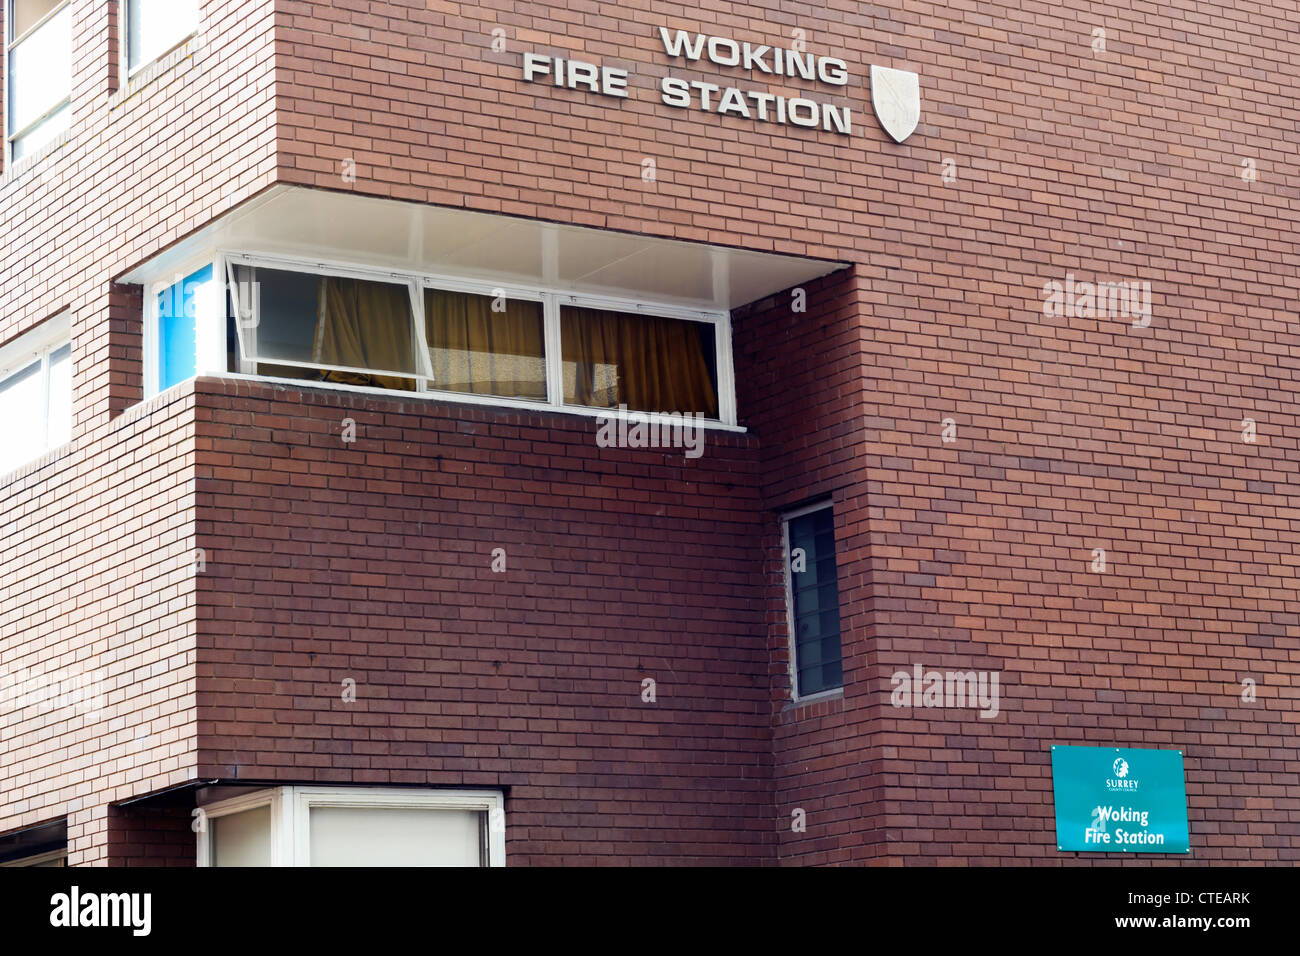 The Woking fire station, now demolished. - Stock Image